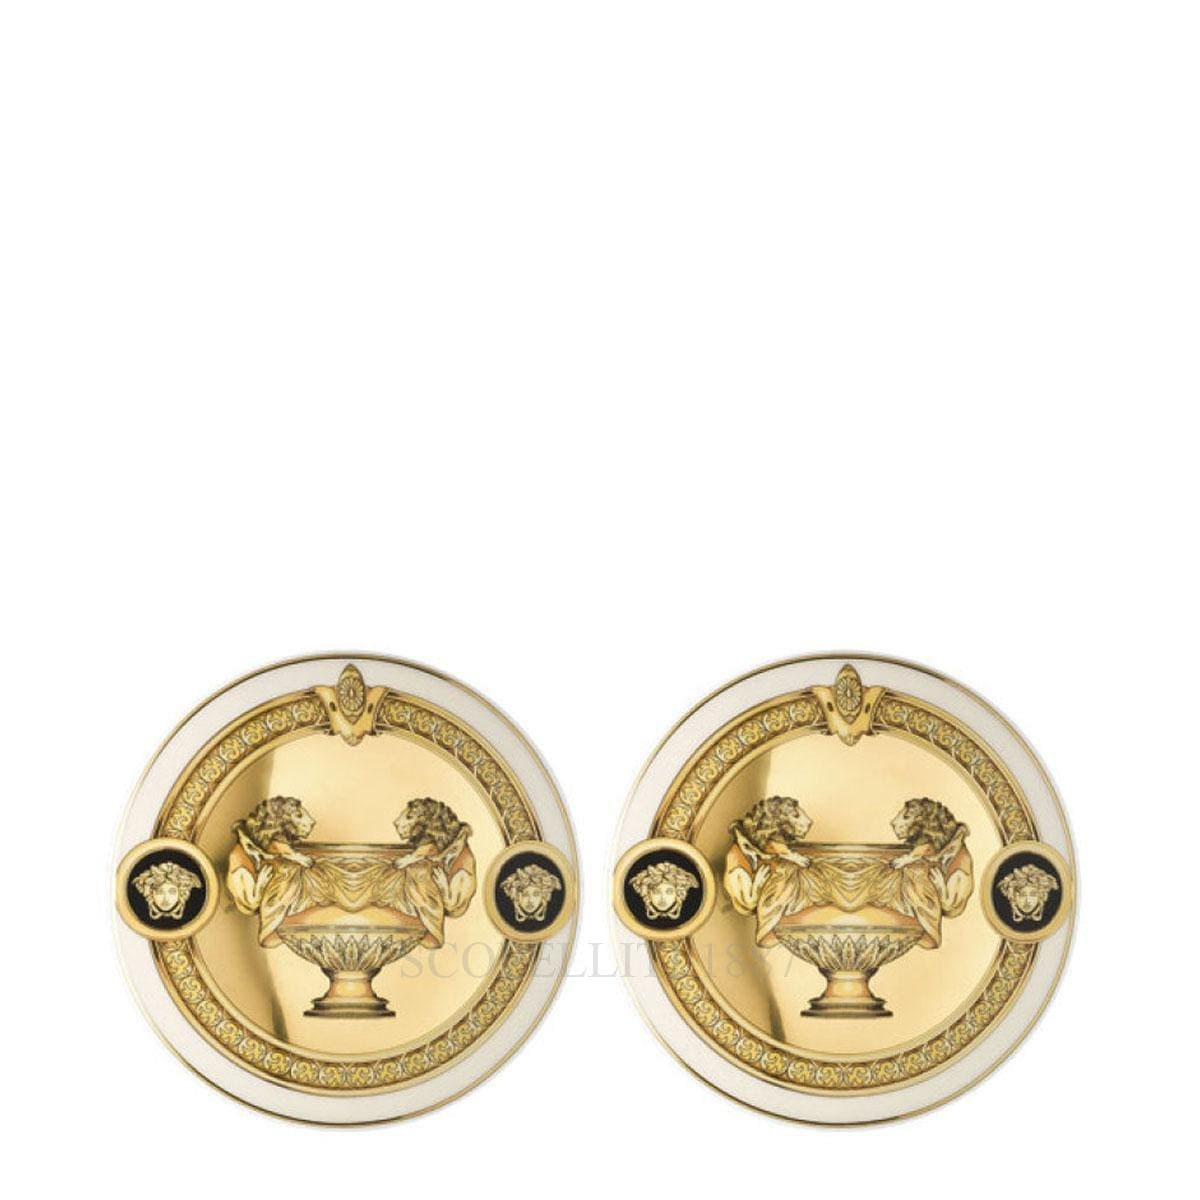 versace italian design prestige gala set of two glass coasters golden